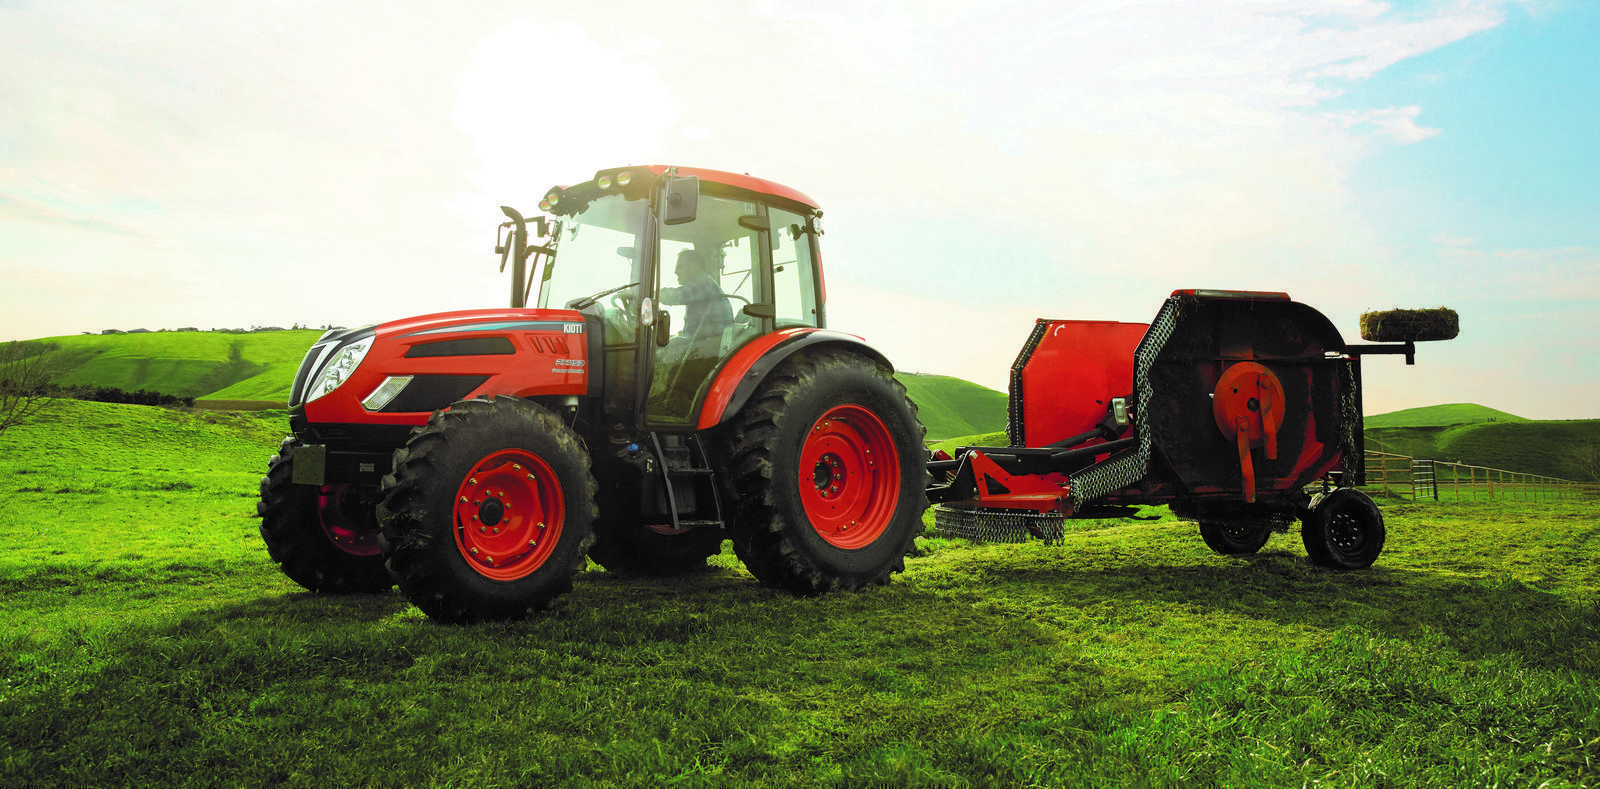 Kioti PX1152 Flexwing Agricultural Tractor in grassy field